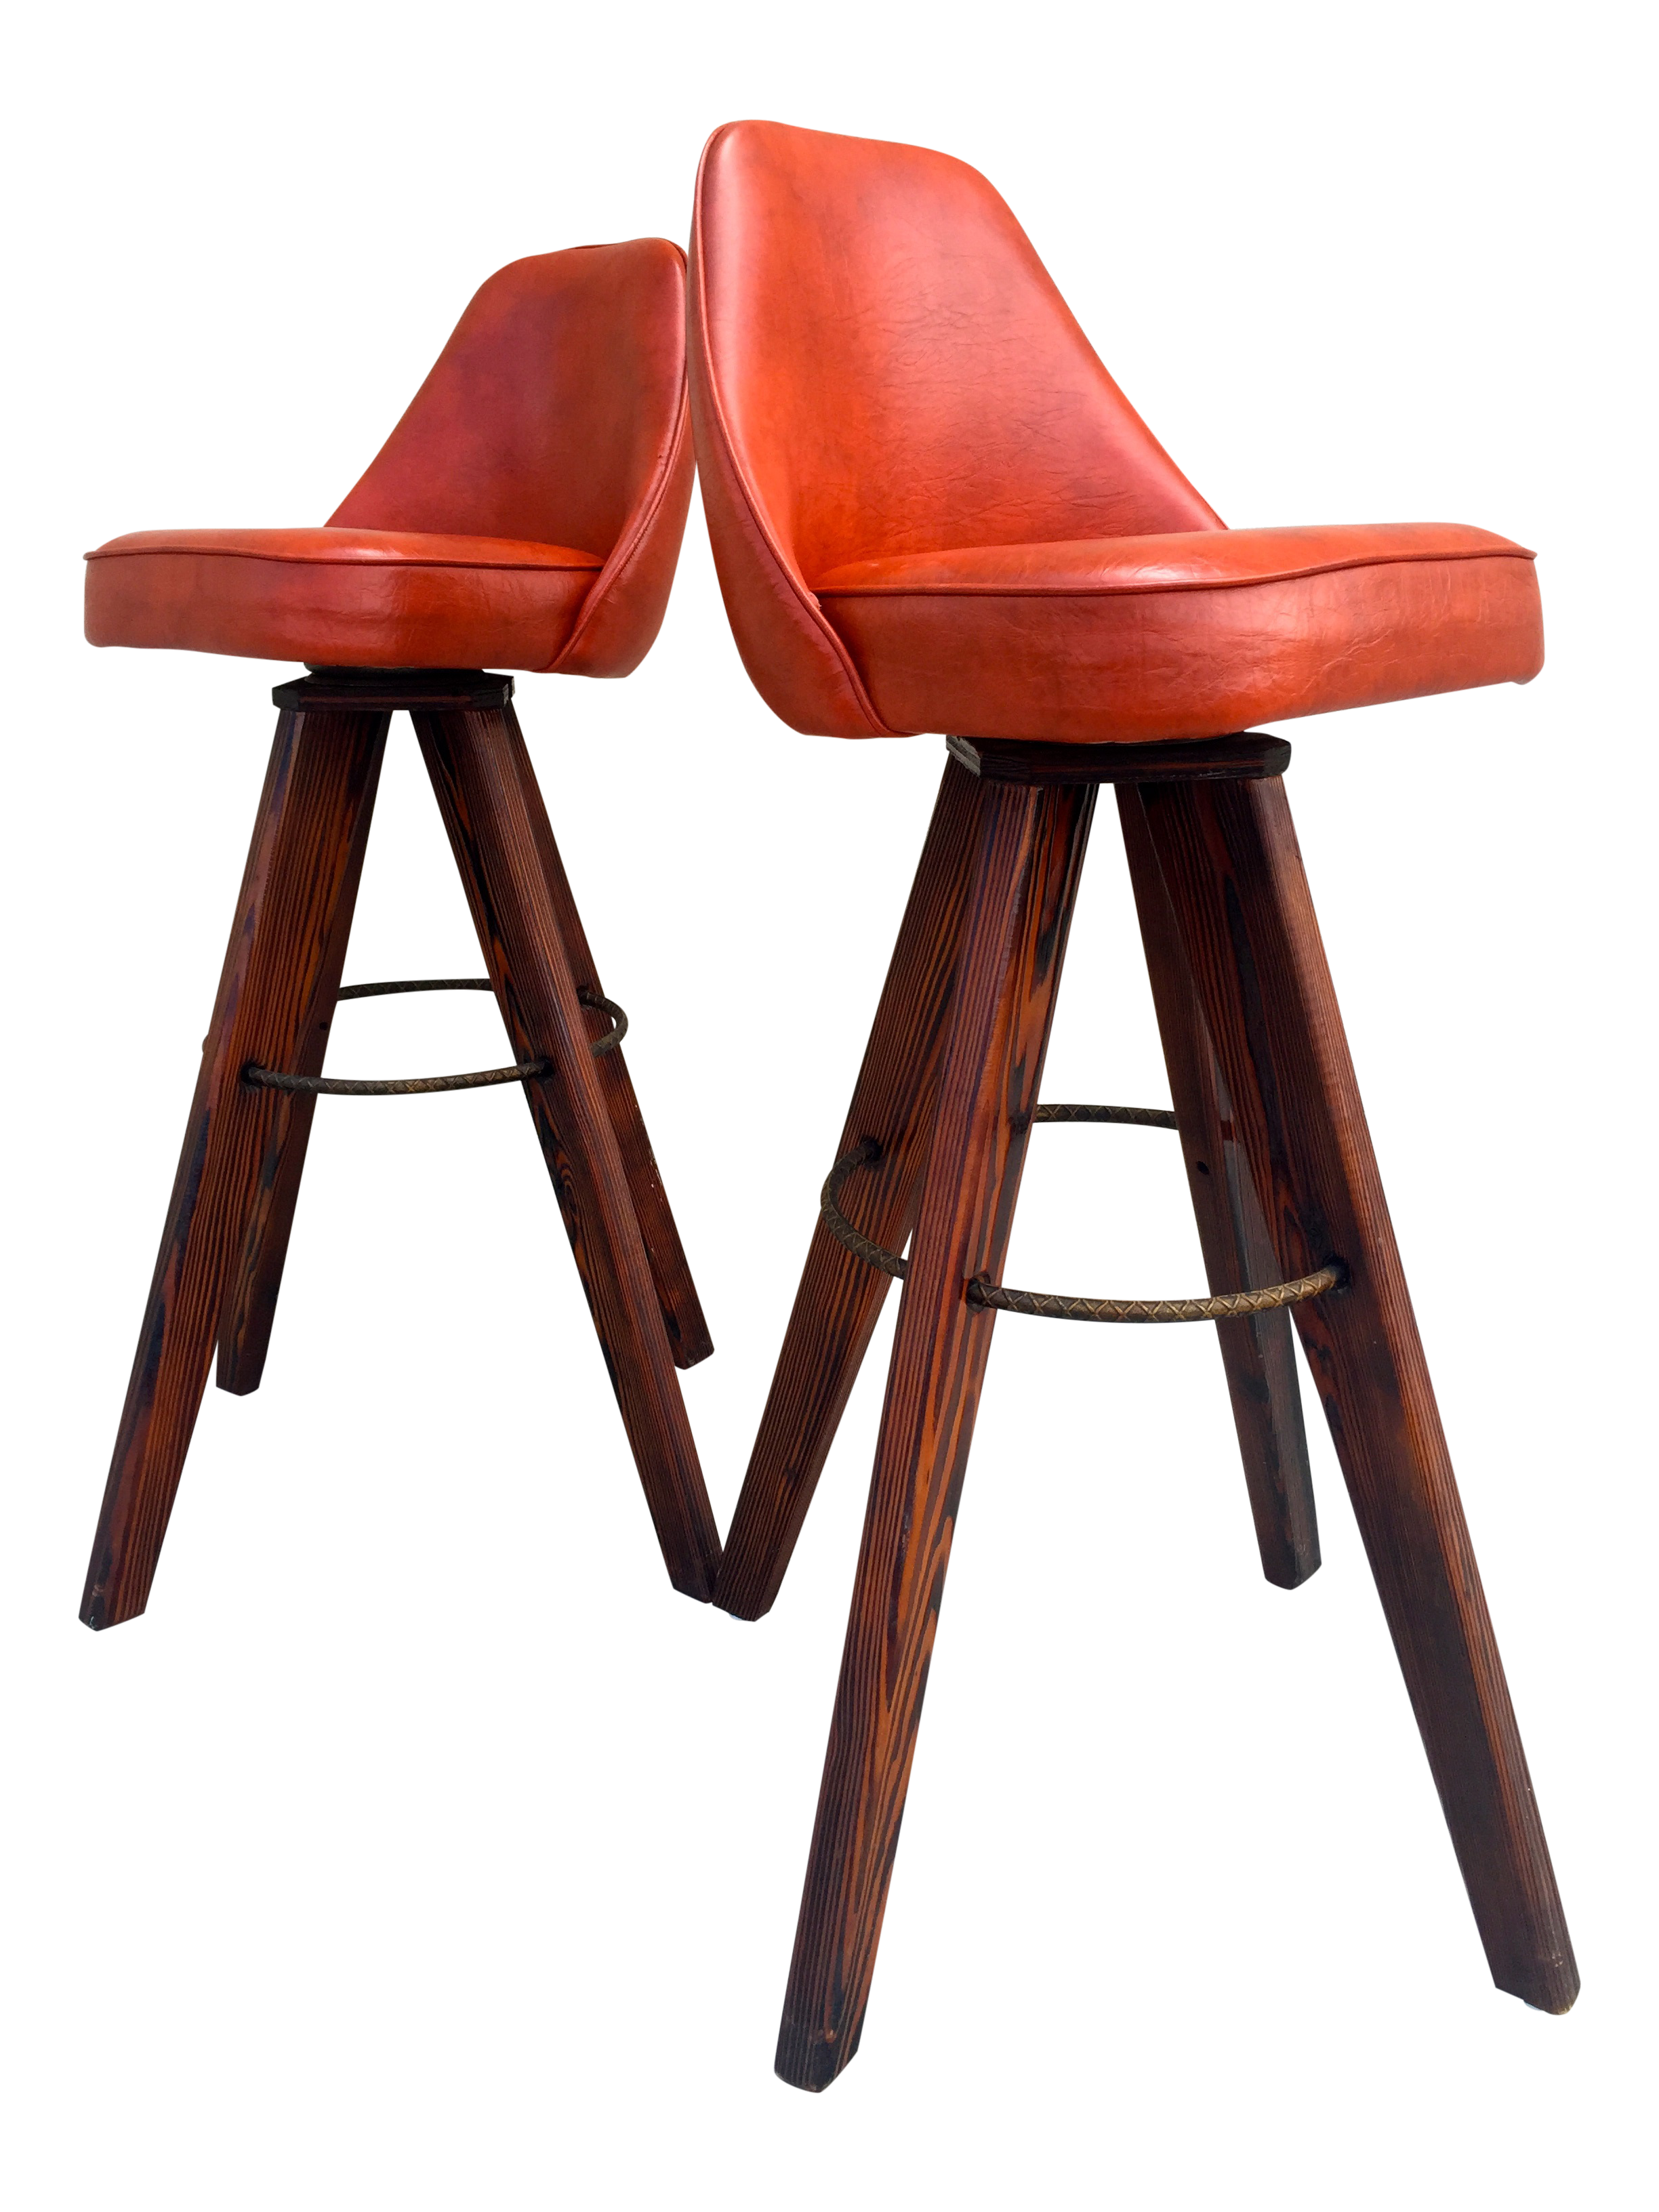 Mid Century Modern Barstools in Orange A Pair Chairish : mid century modern barstools in orange a pair 1826aspectfitampwidth640ampheight640 from www.chairish.com size 640 x 640 jpeg 34kB